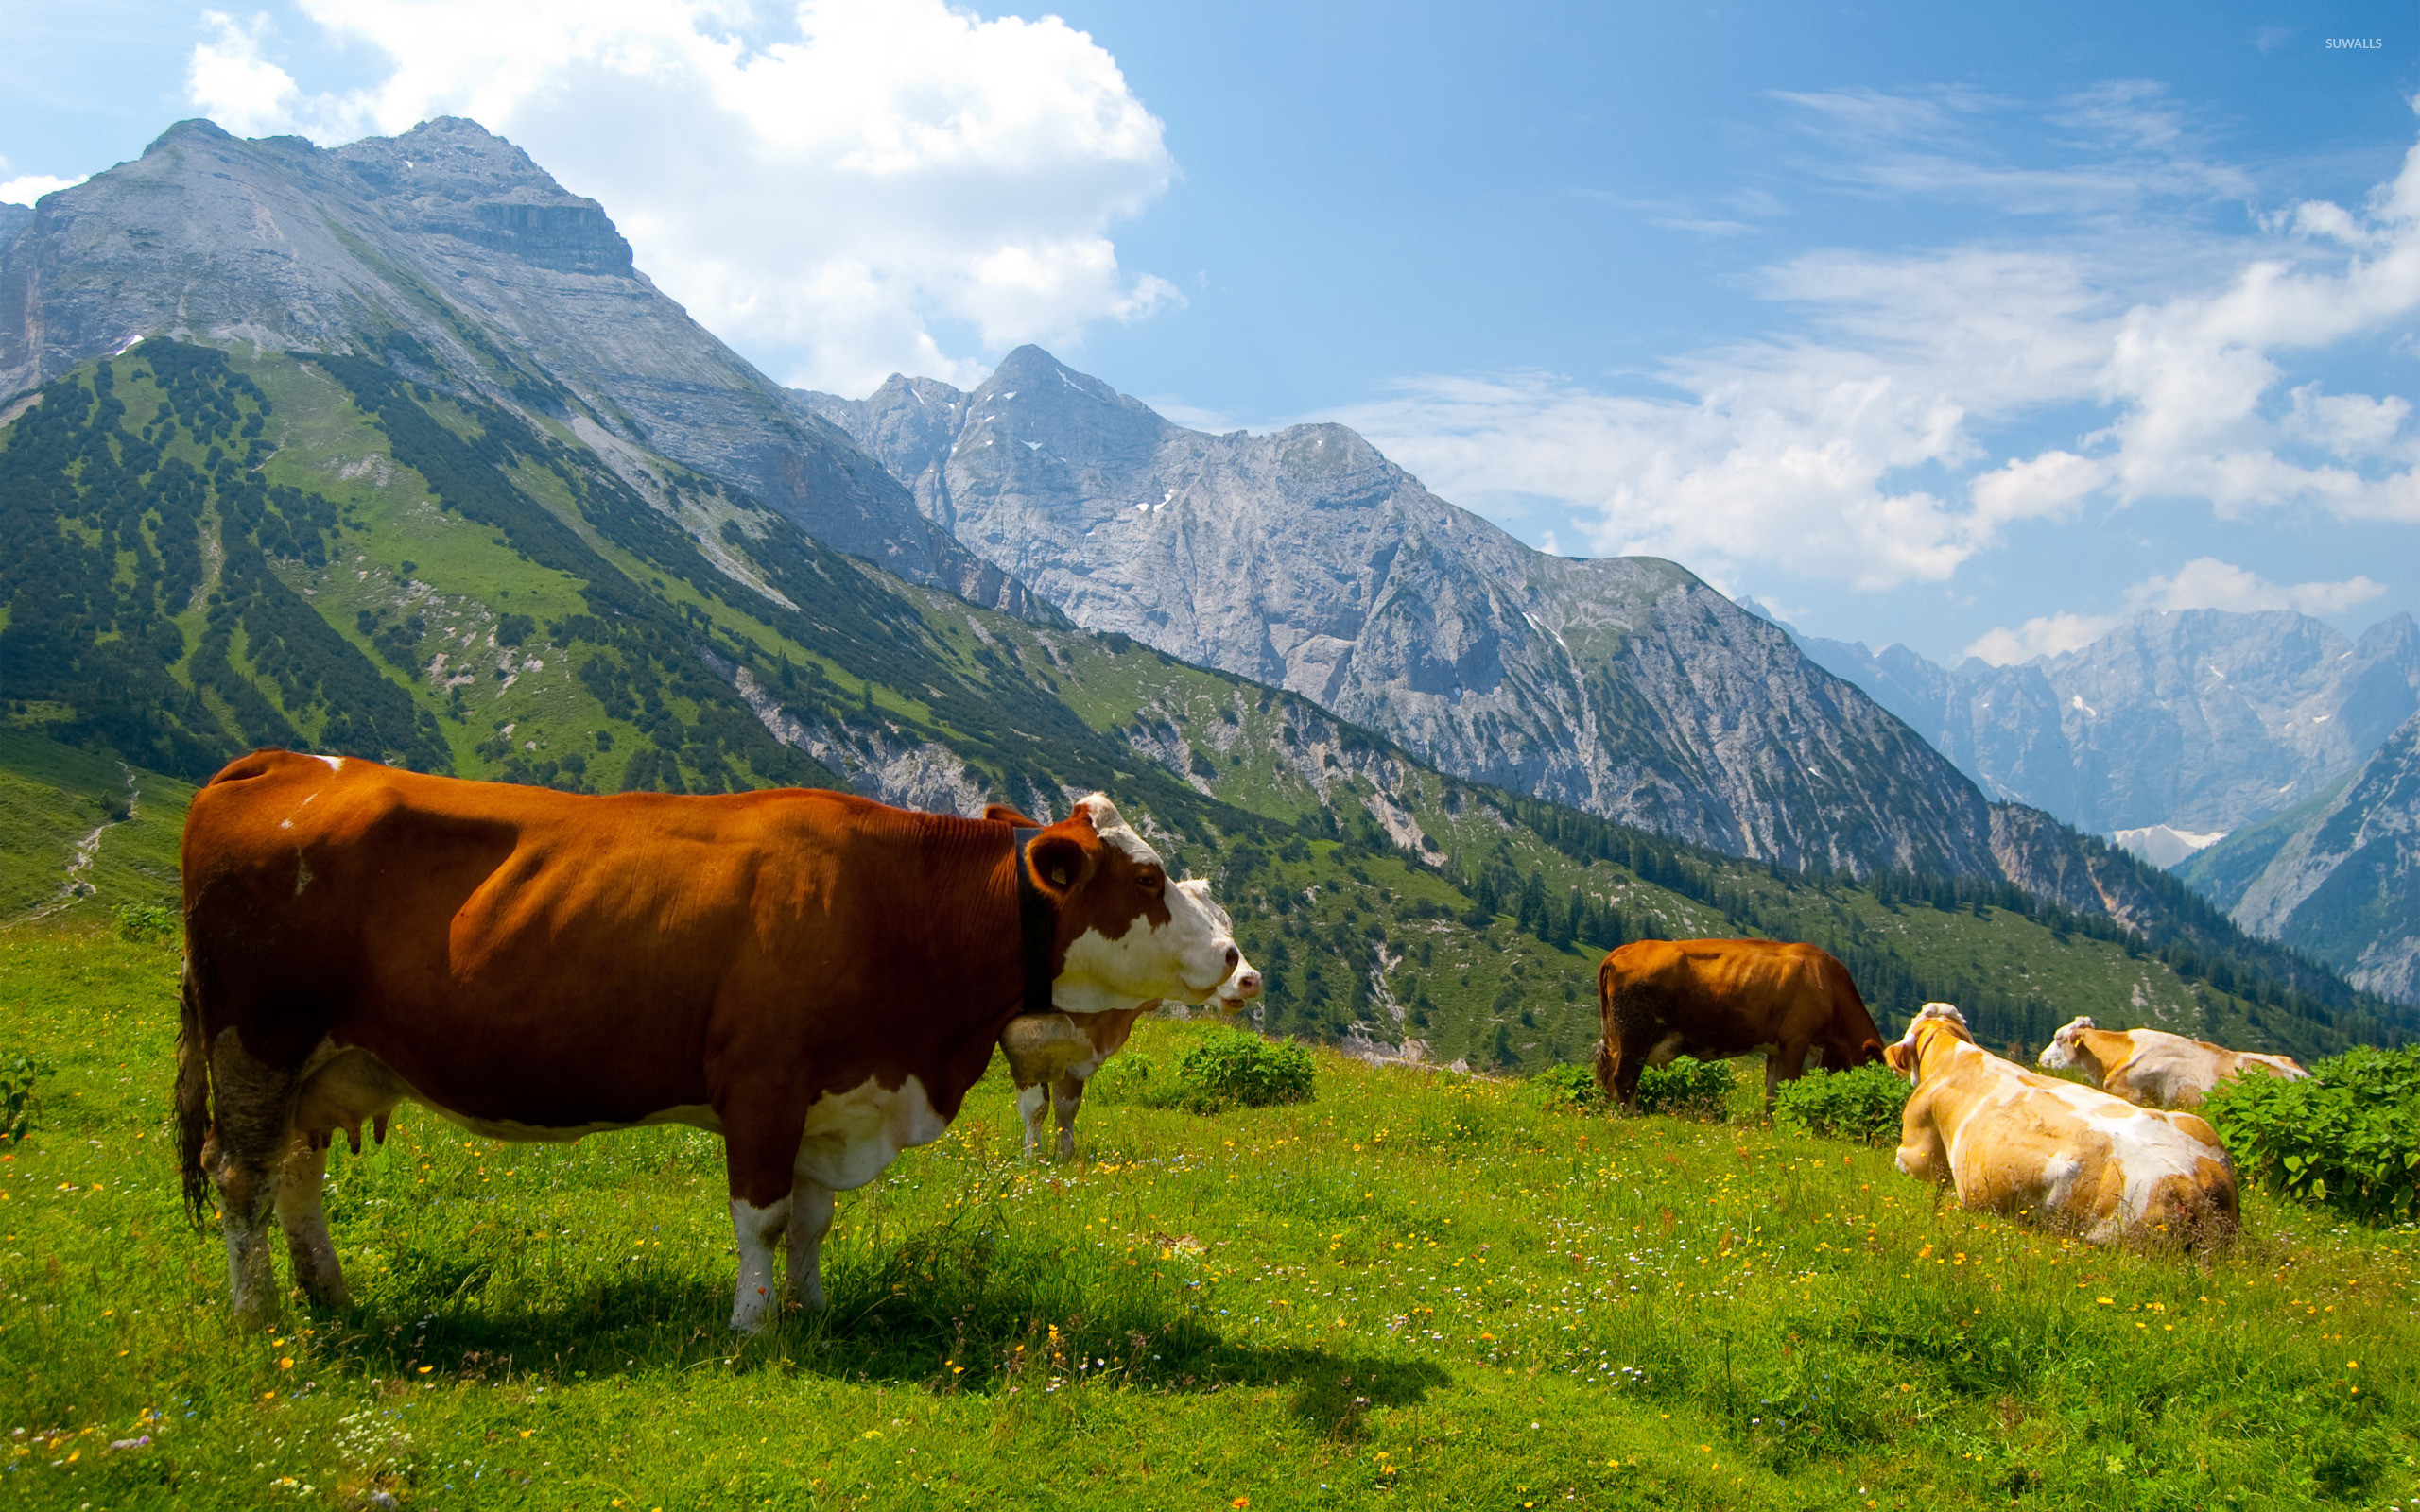 Res: 2560x1600, Cows in the Alps [3] wallpaper